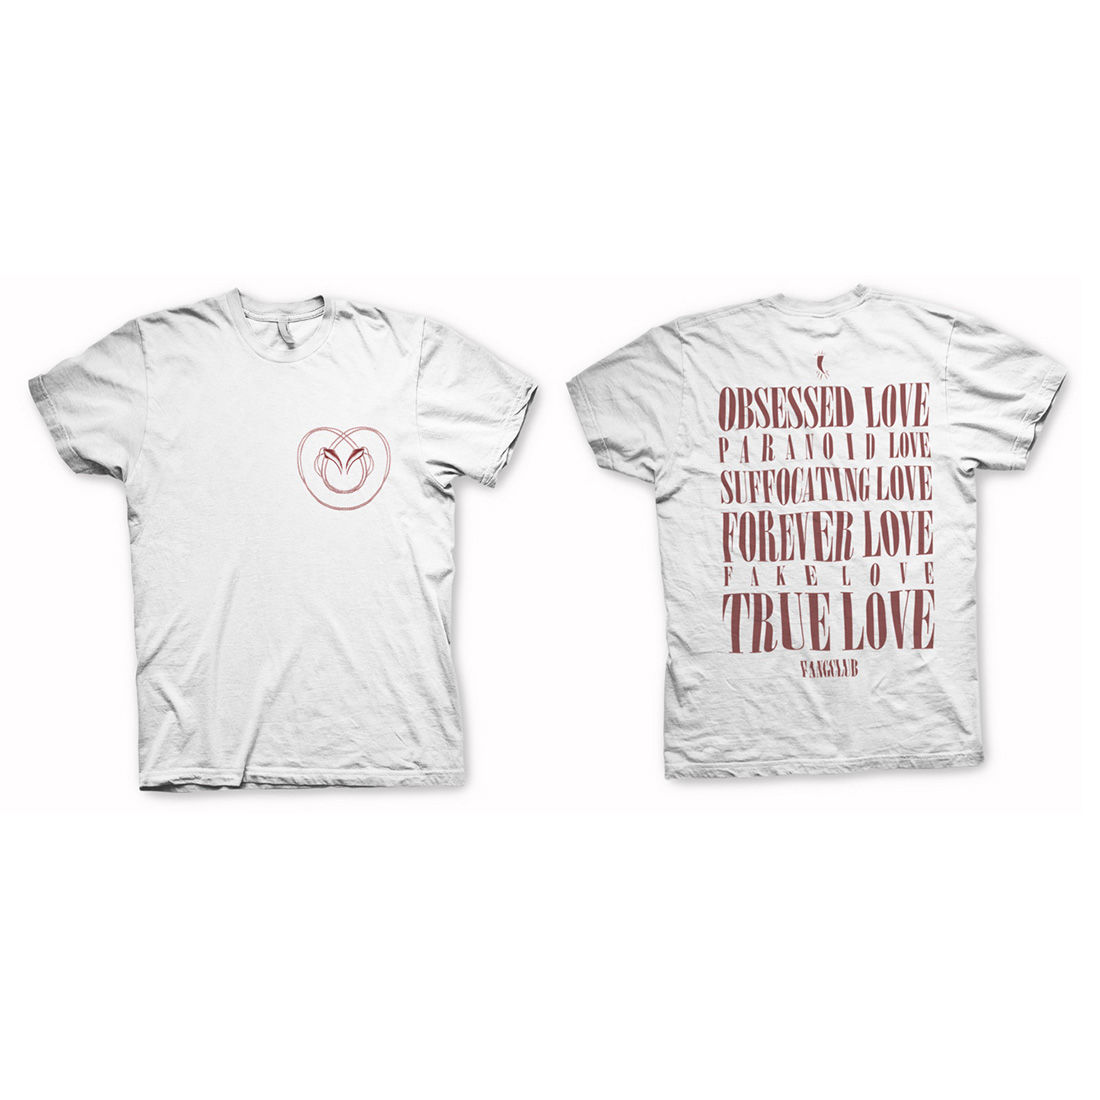 Fangclub: TRUE LOVE T-SHIRT - S